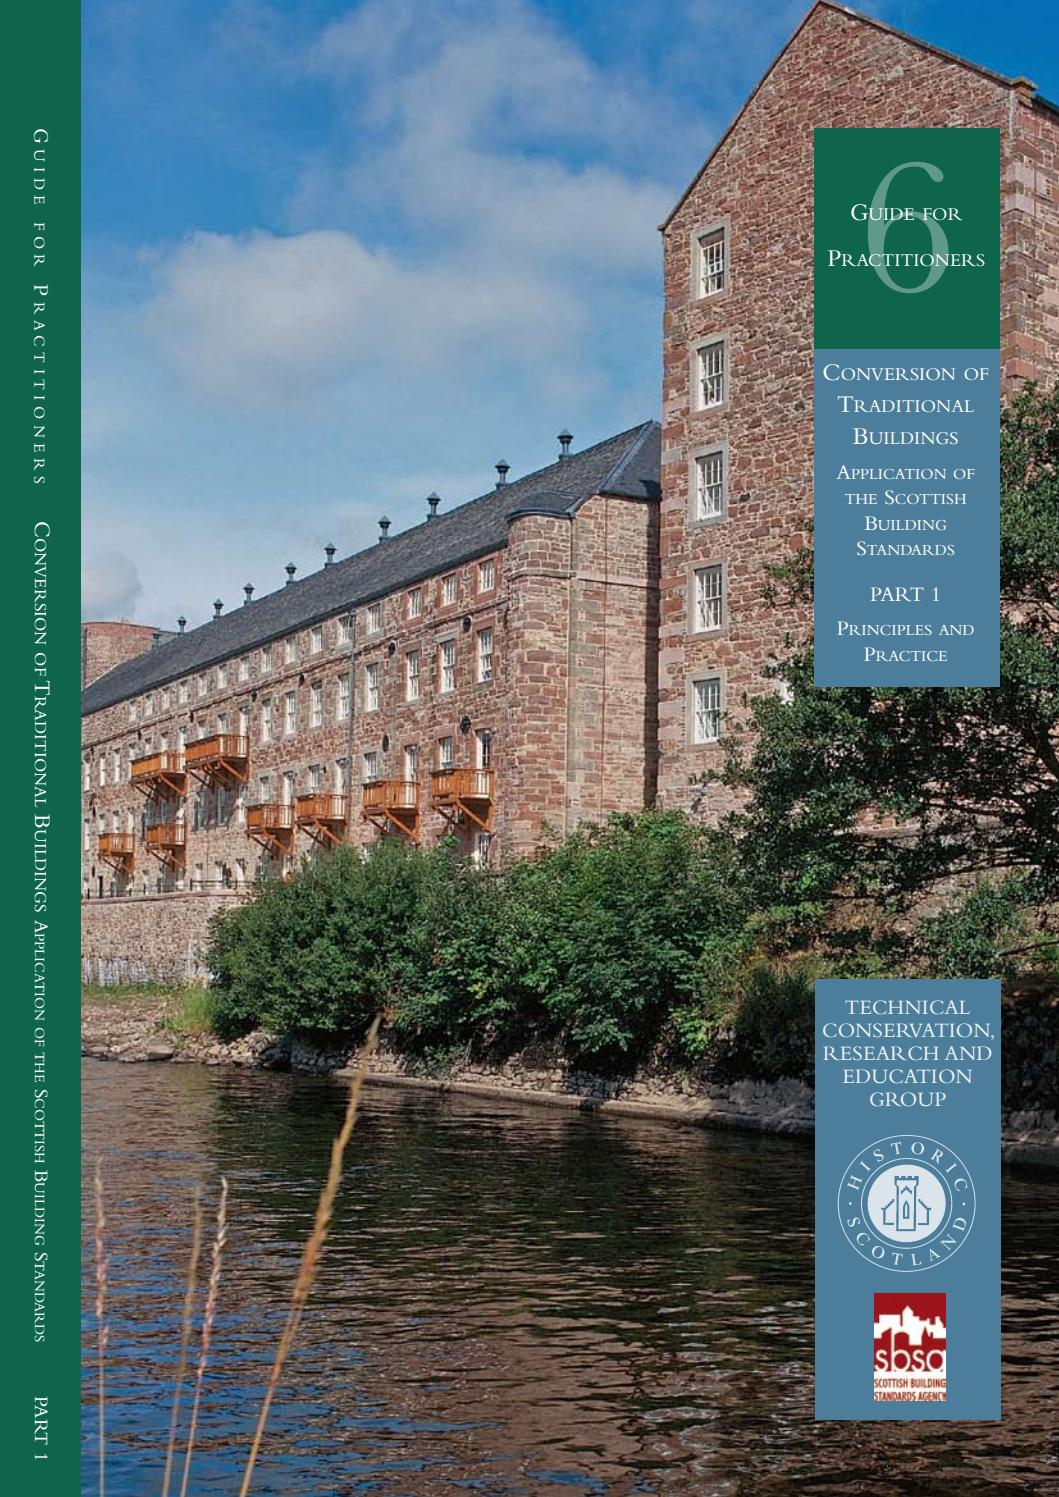 Guide for Practitioners 6 - Conversion of Traditional Buildings - Part 1 by  Historic Environment Scotland - issuu